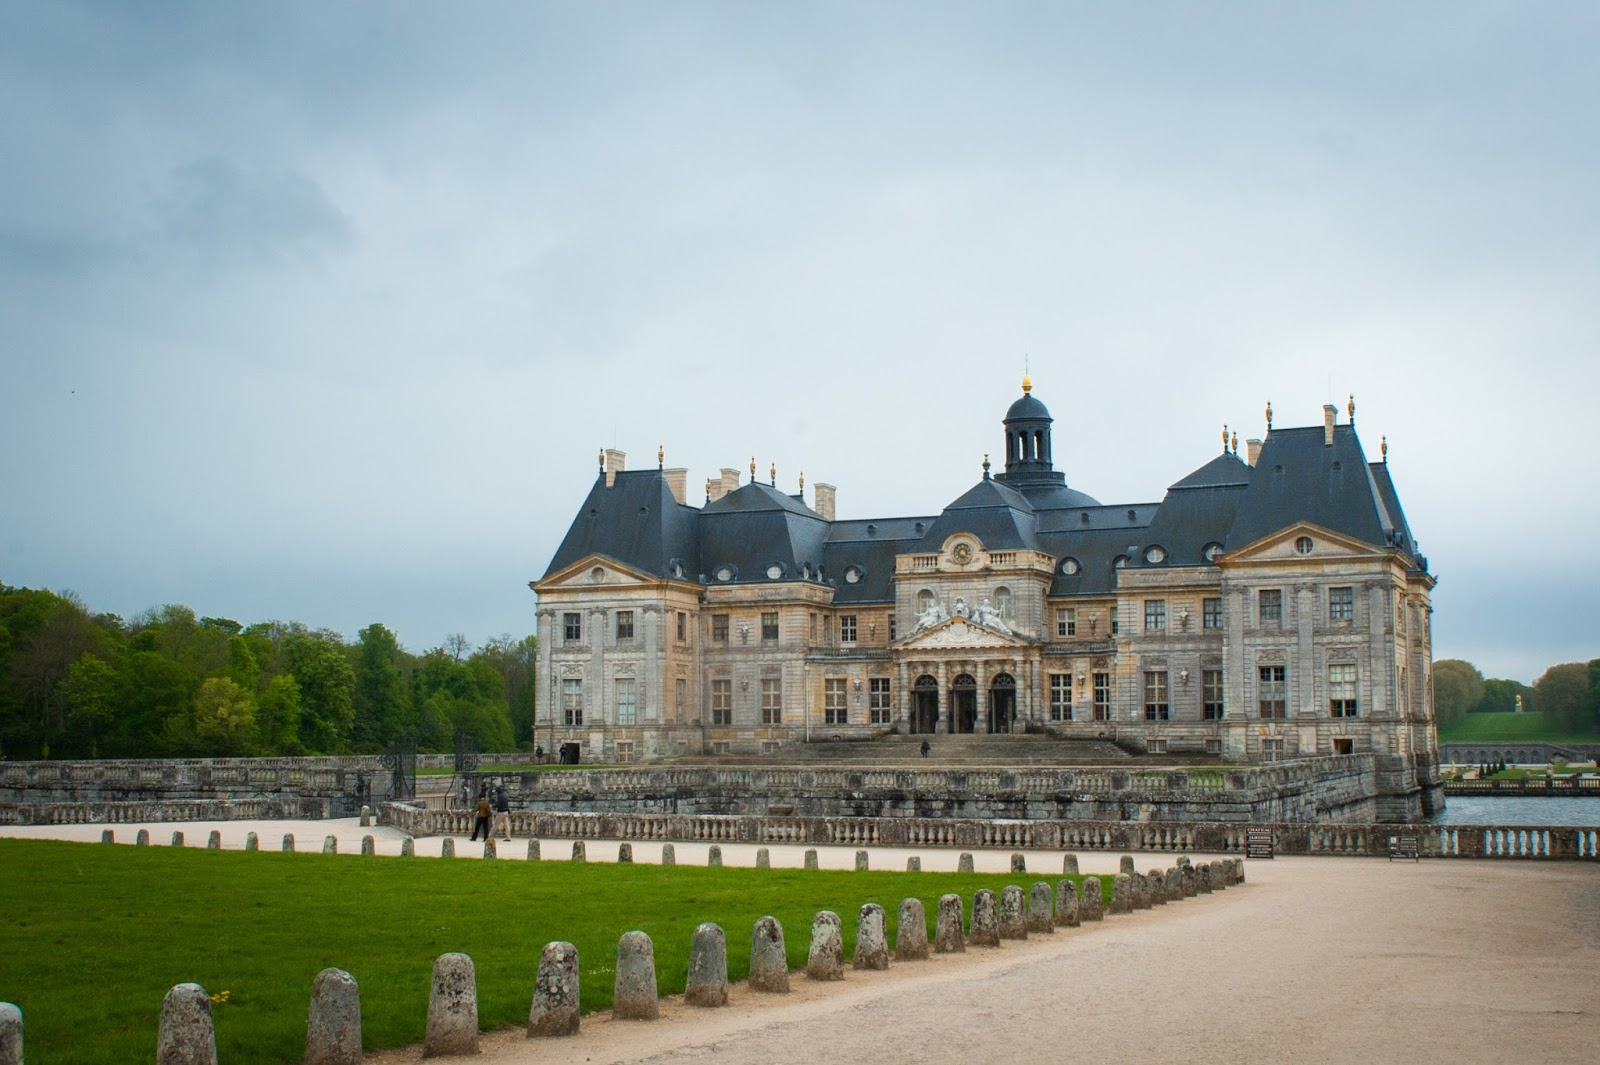 The Vaux Le Vicomte Castle Outside Paris in Maincy France